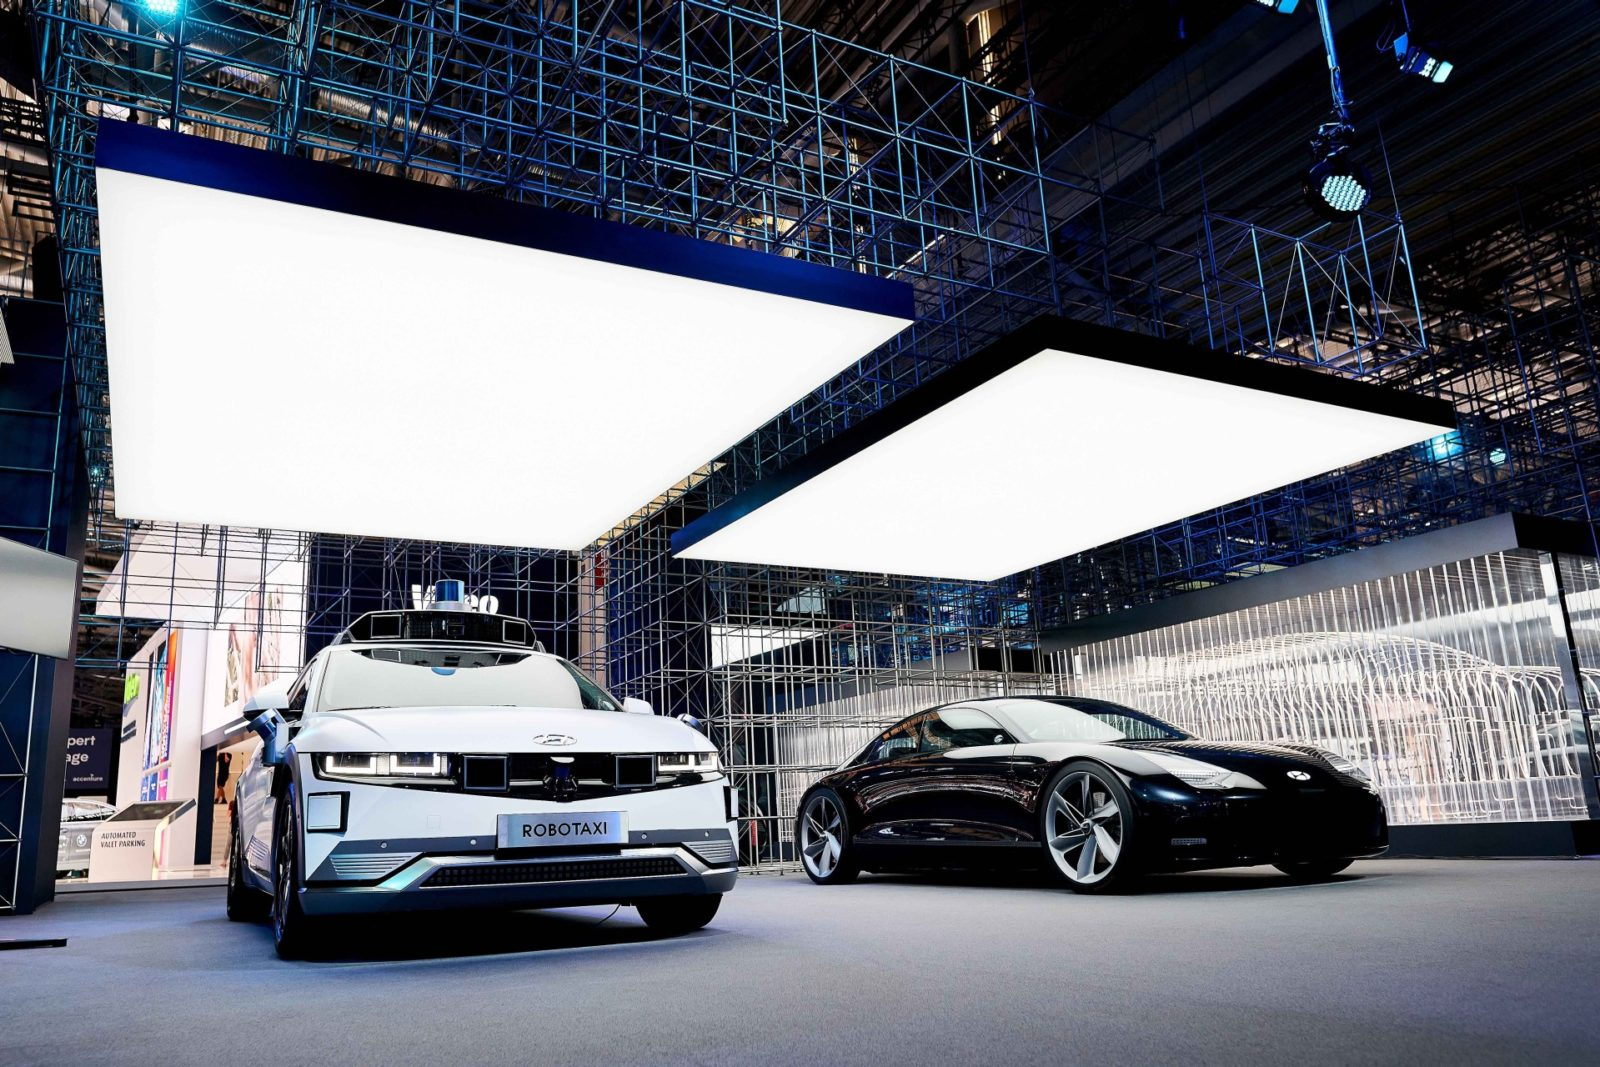 hyundai-makes-carbon-neutral-commitment,-here-is-what-that-means-to-everyone